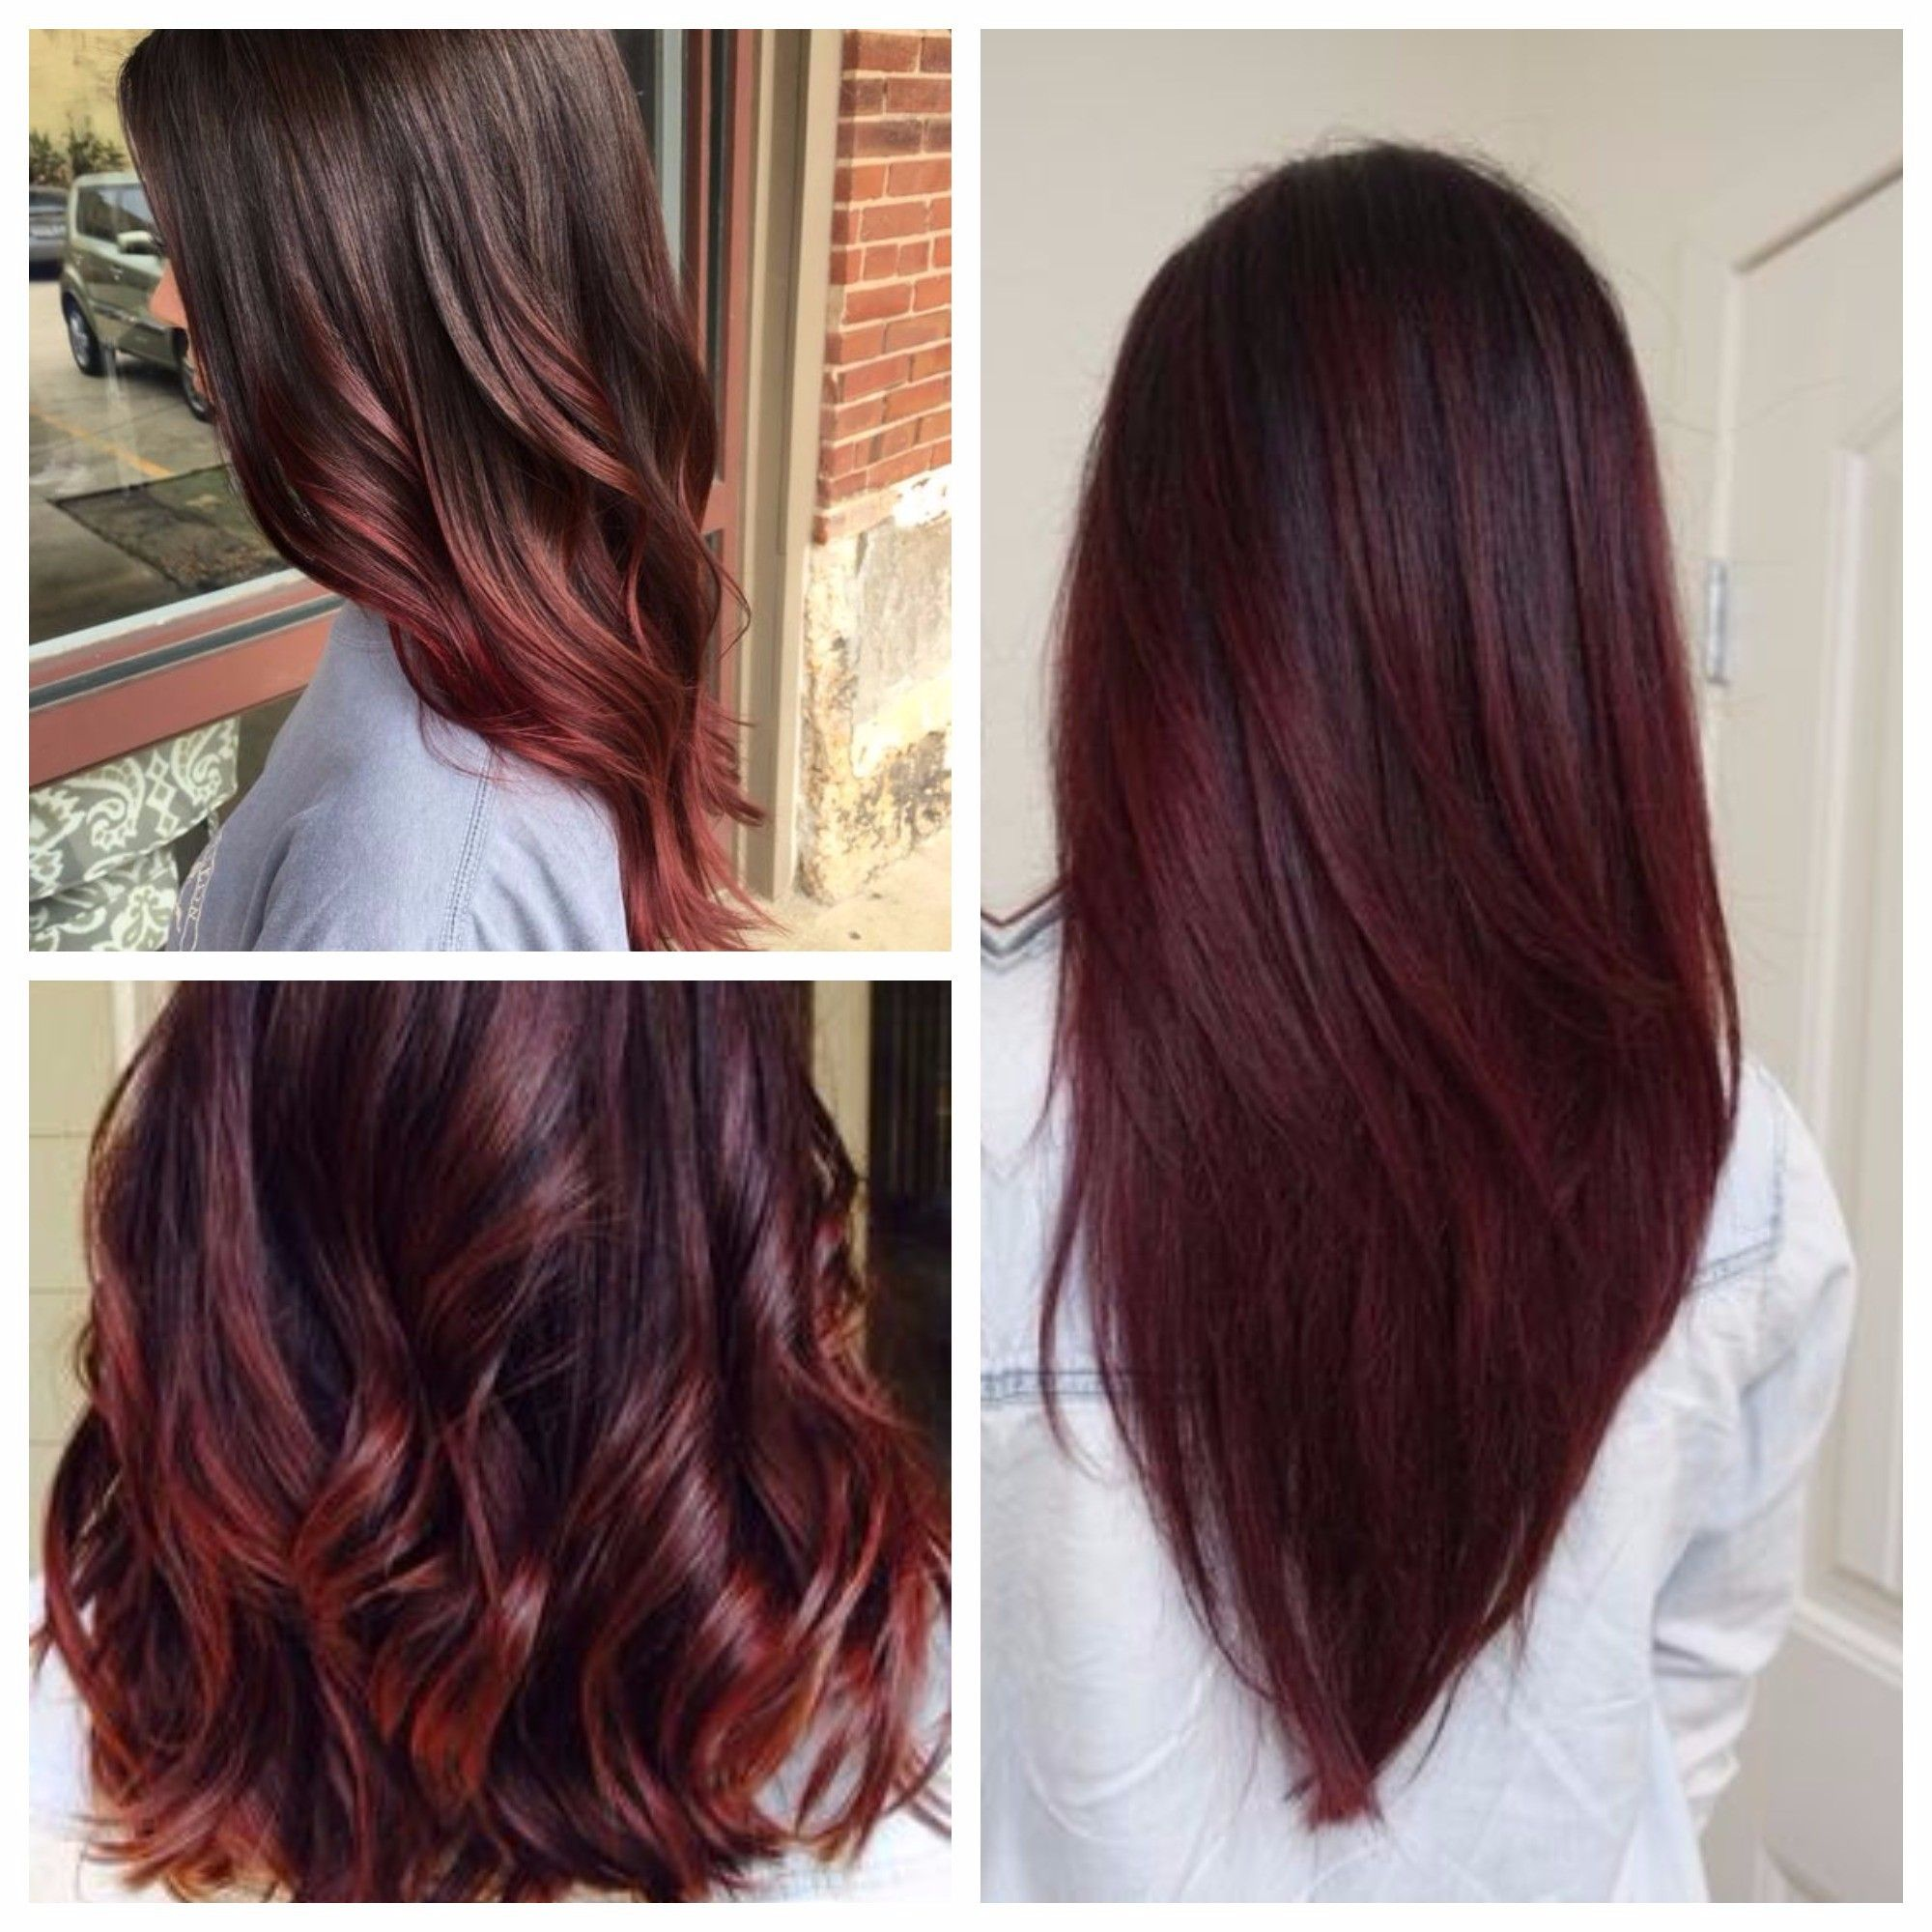 Pin By Marilyn Del Peso On Hair Red Ombre Hair Brown Hair Colors Brown Hair With Highlights